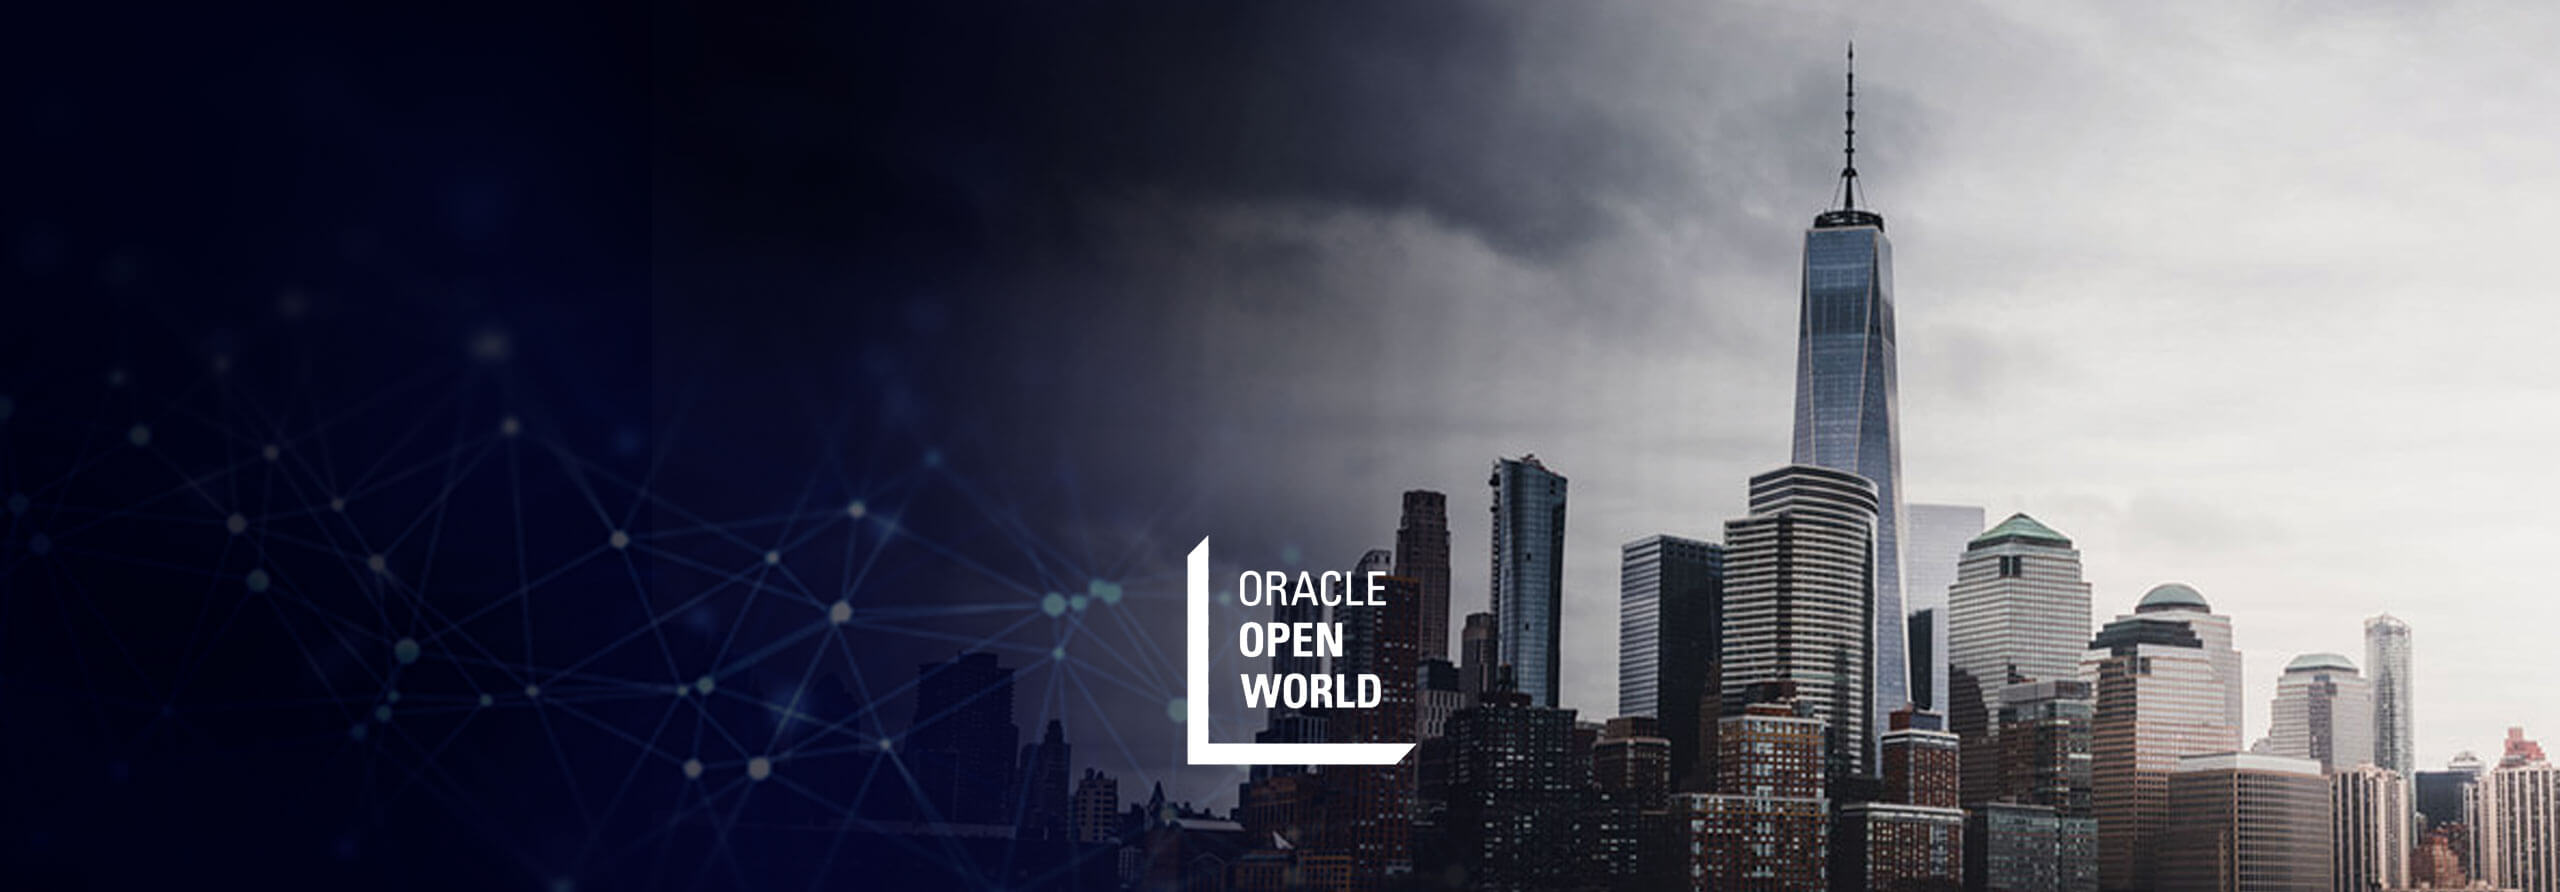 TRINAMIX AT ORACLE OPEN WORLD 2019 | Booth: #844